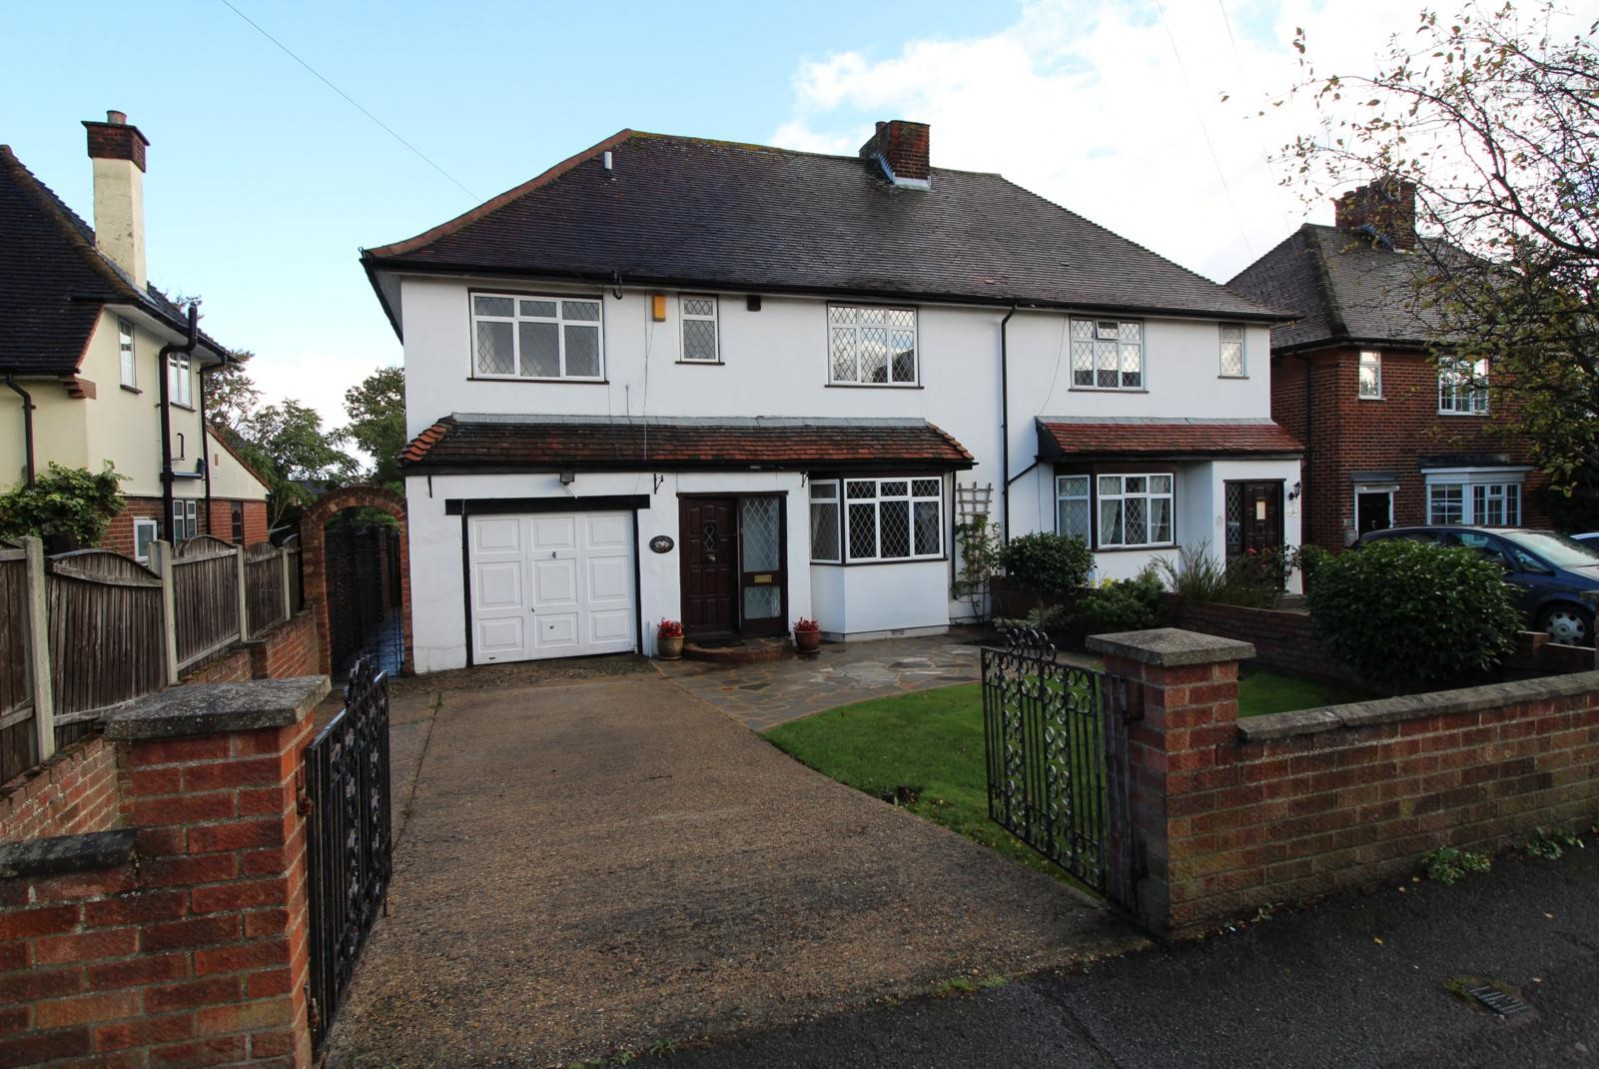 Park Lane, Aveley, South Ockendon, Essex, RM15